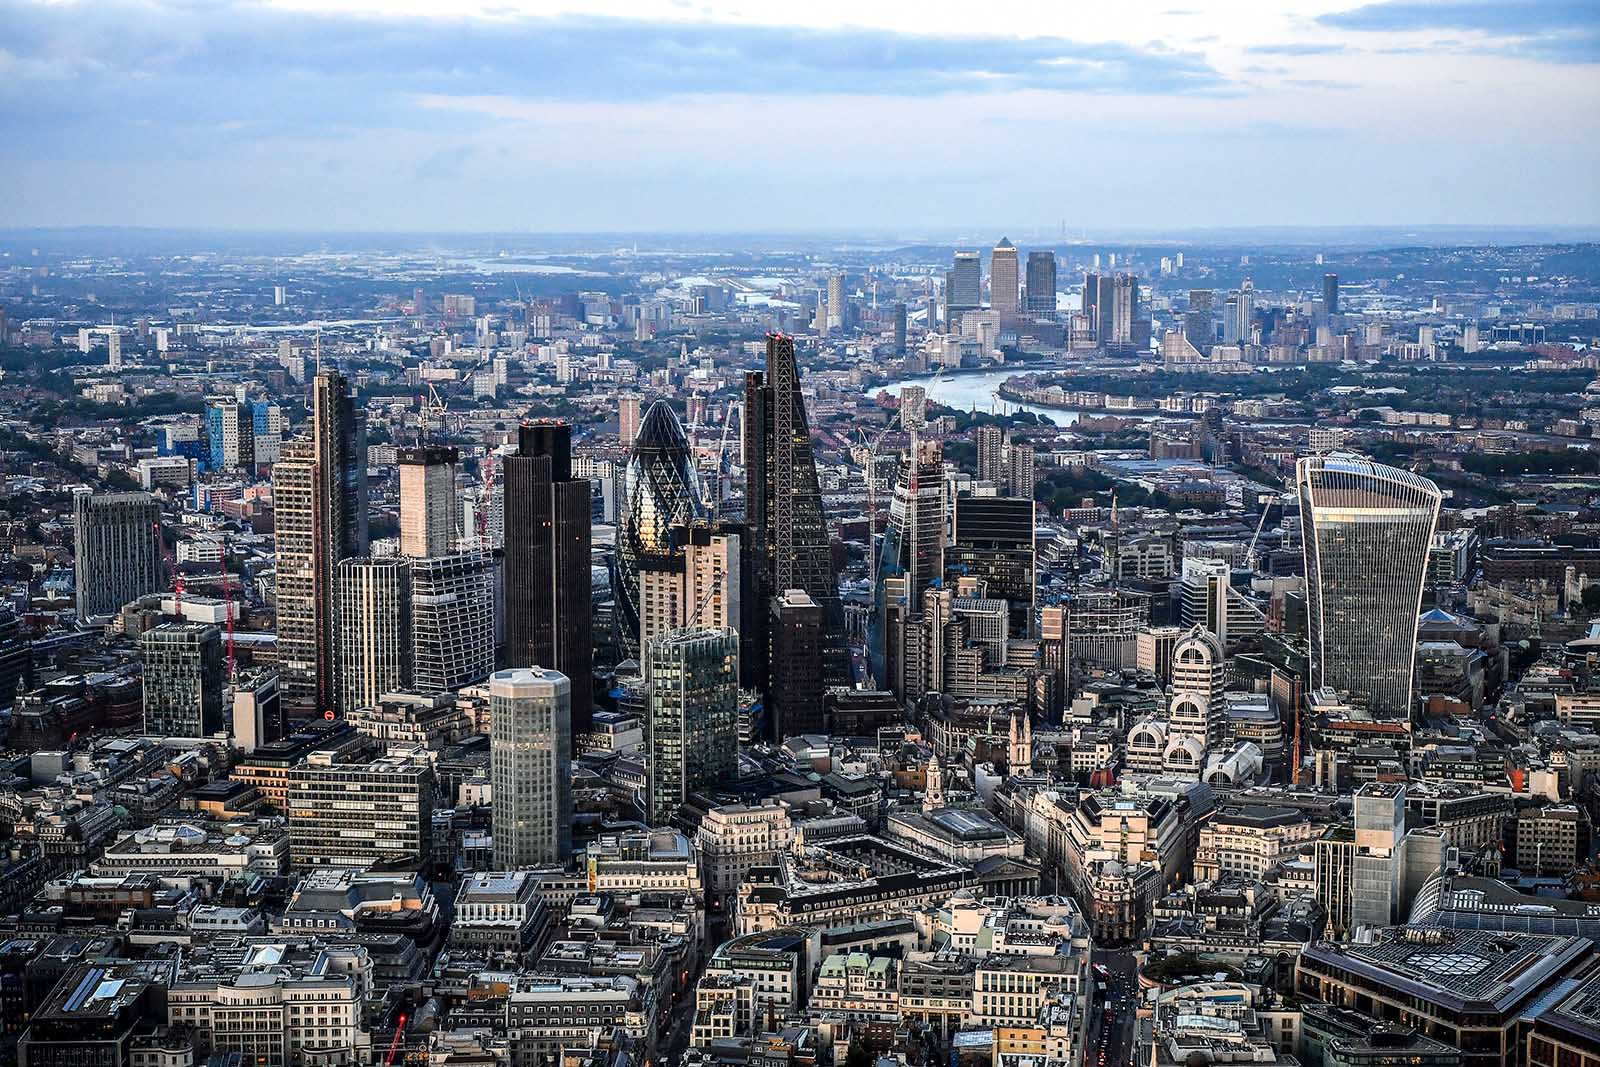 An aerial view of Londonu0027s financial district